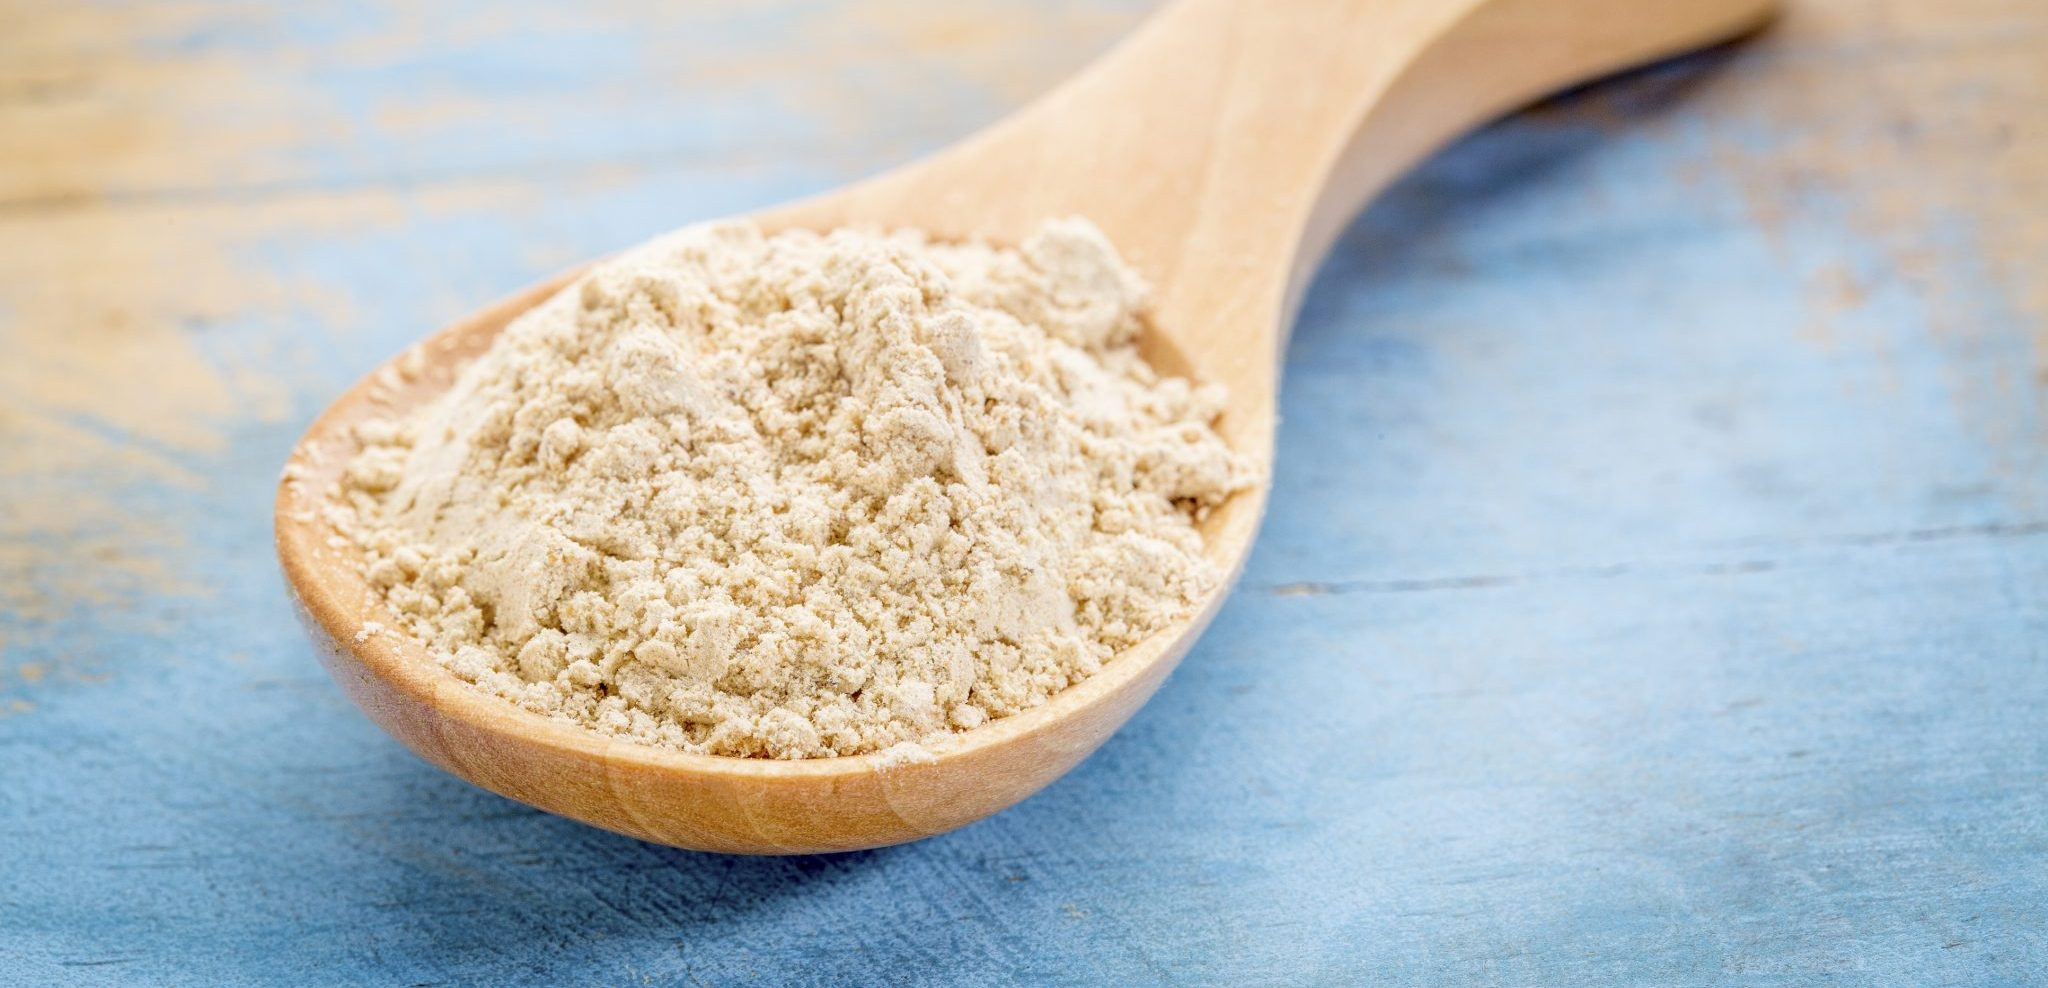 All You Need to Know About Peruvian Magic That Is Maca Powder